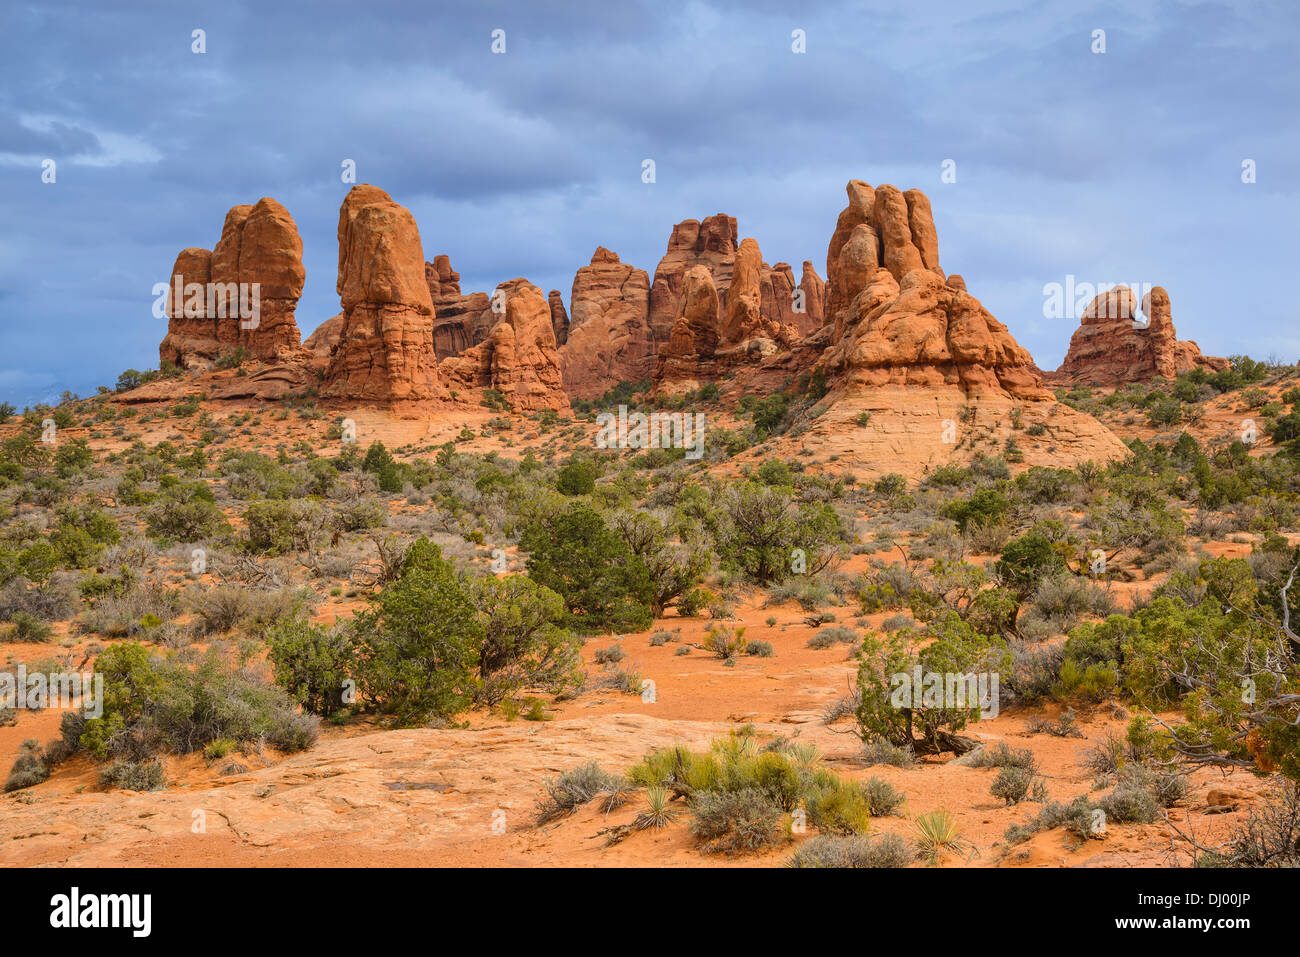 Rock formations near Windows Section, Arches National Park, Utah, USA - Stock Image